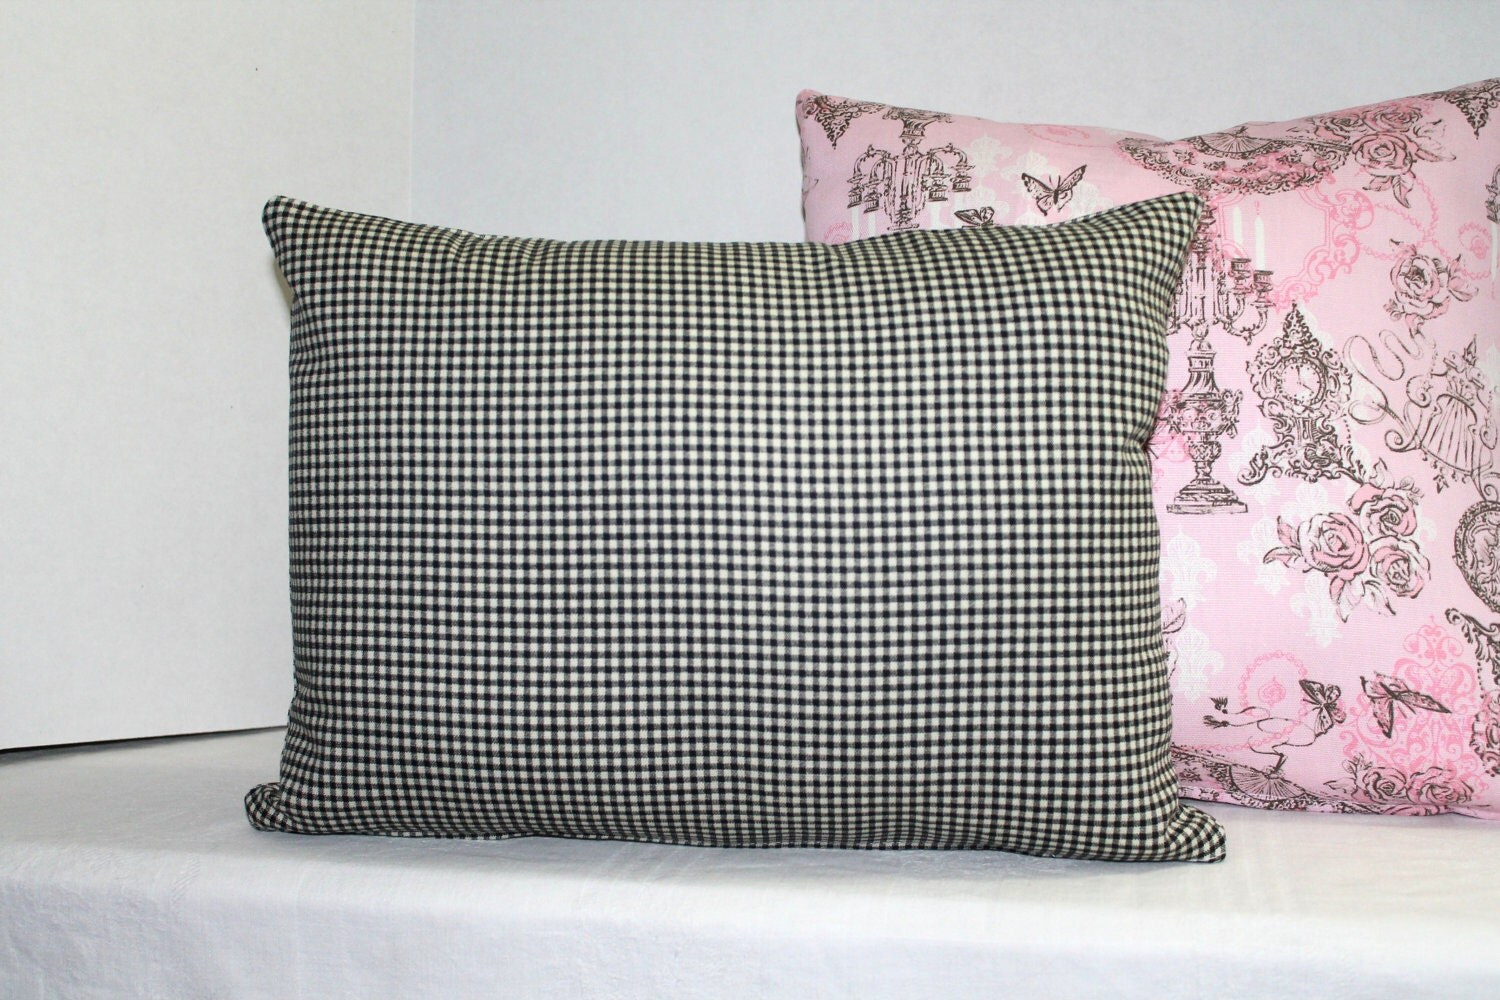 lumbar pillow cover black white gingham 16 x 12 nursery decor. Black Bedroom Furniture Sets. Home Design Ideas